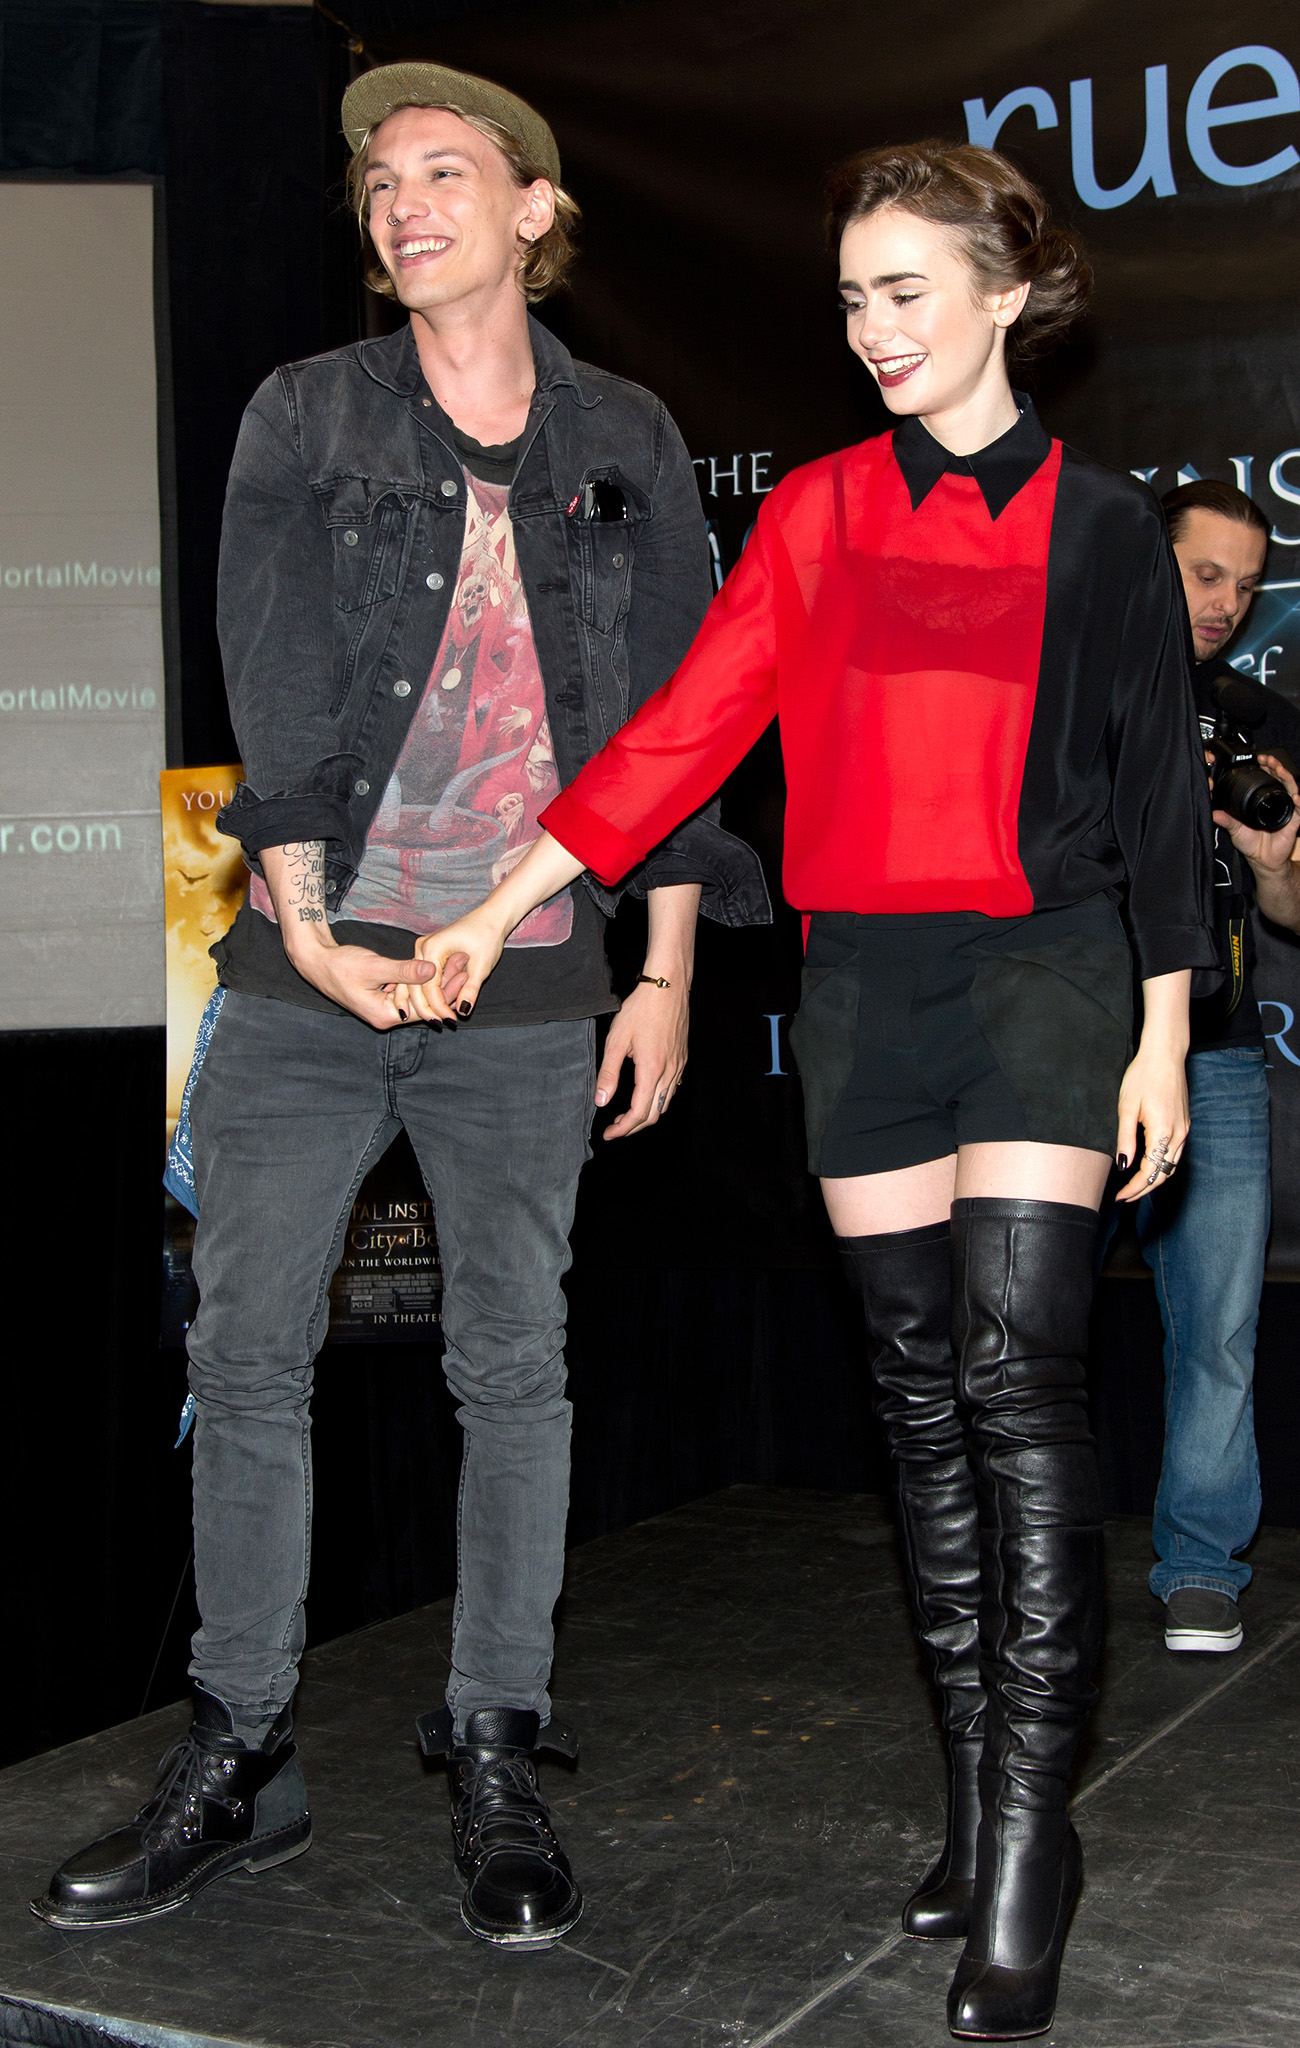 Lily Collins and Jamie Campbell Bower promote 'The Mortal Instruments' (Gilbert Carrasquillo/FilmMagic)